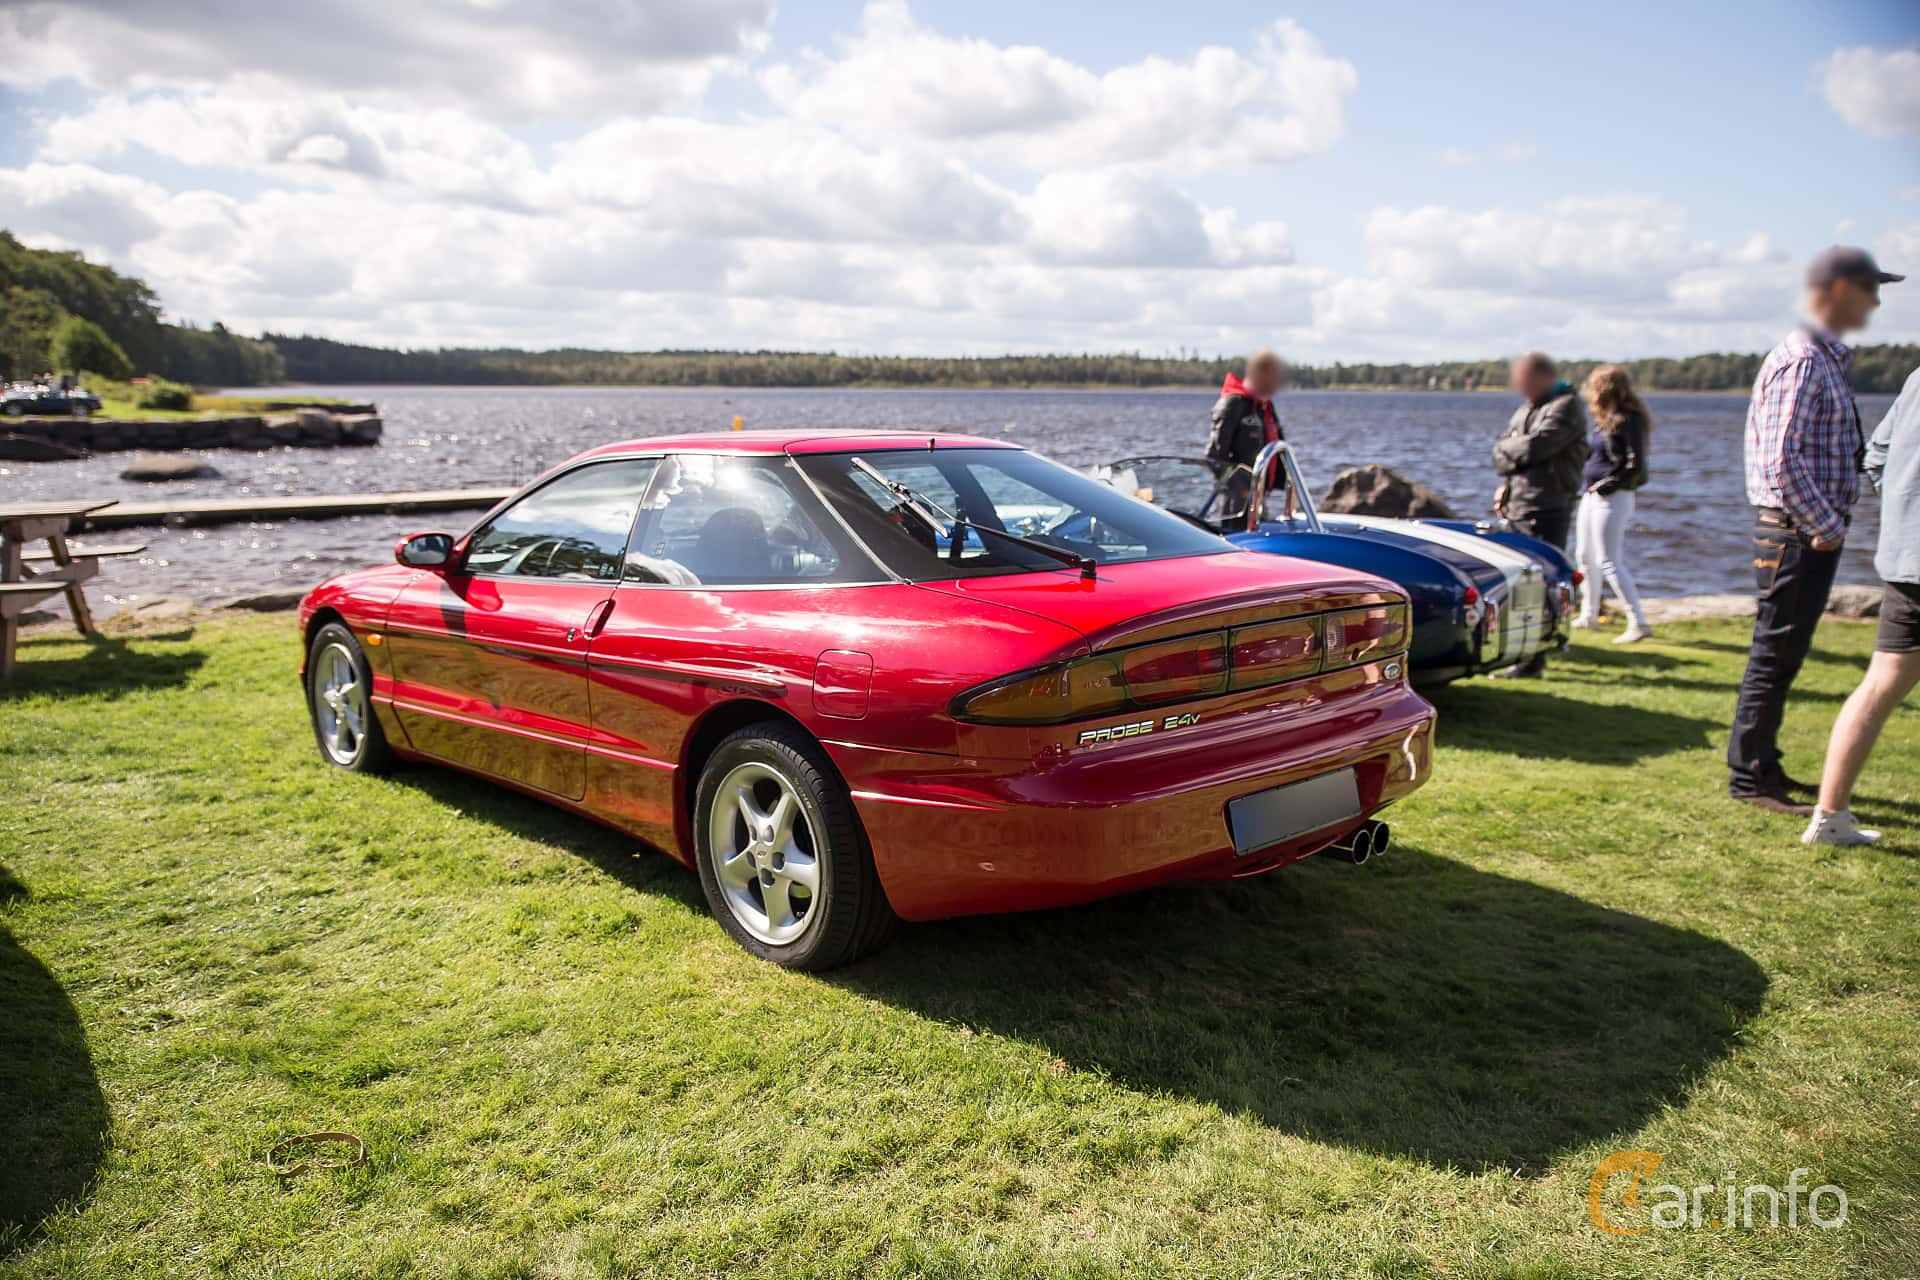 Ford Probe 2.5 V6 Manual, 163hp, 1994 at Sportvagnsträffen 2016